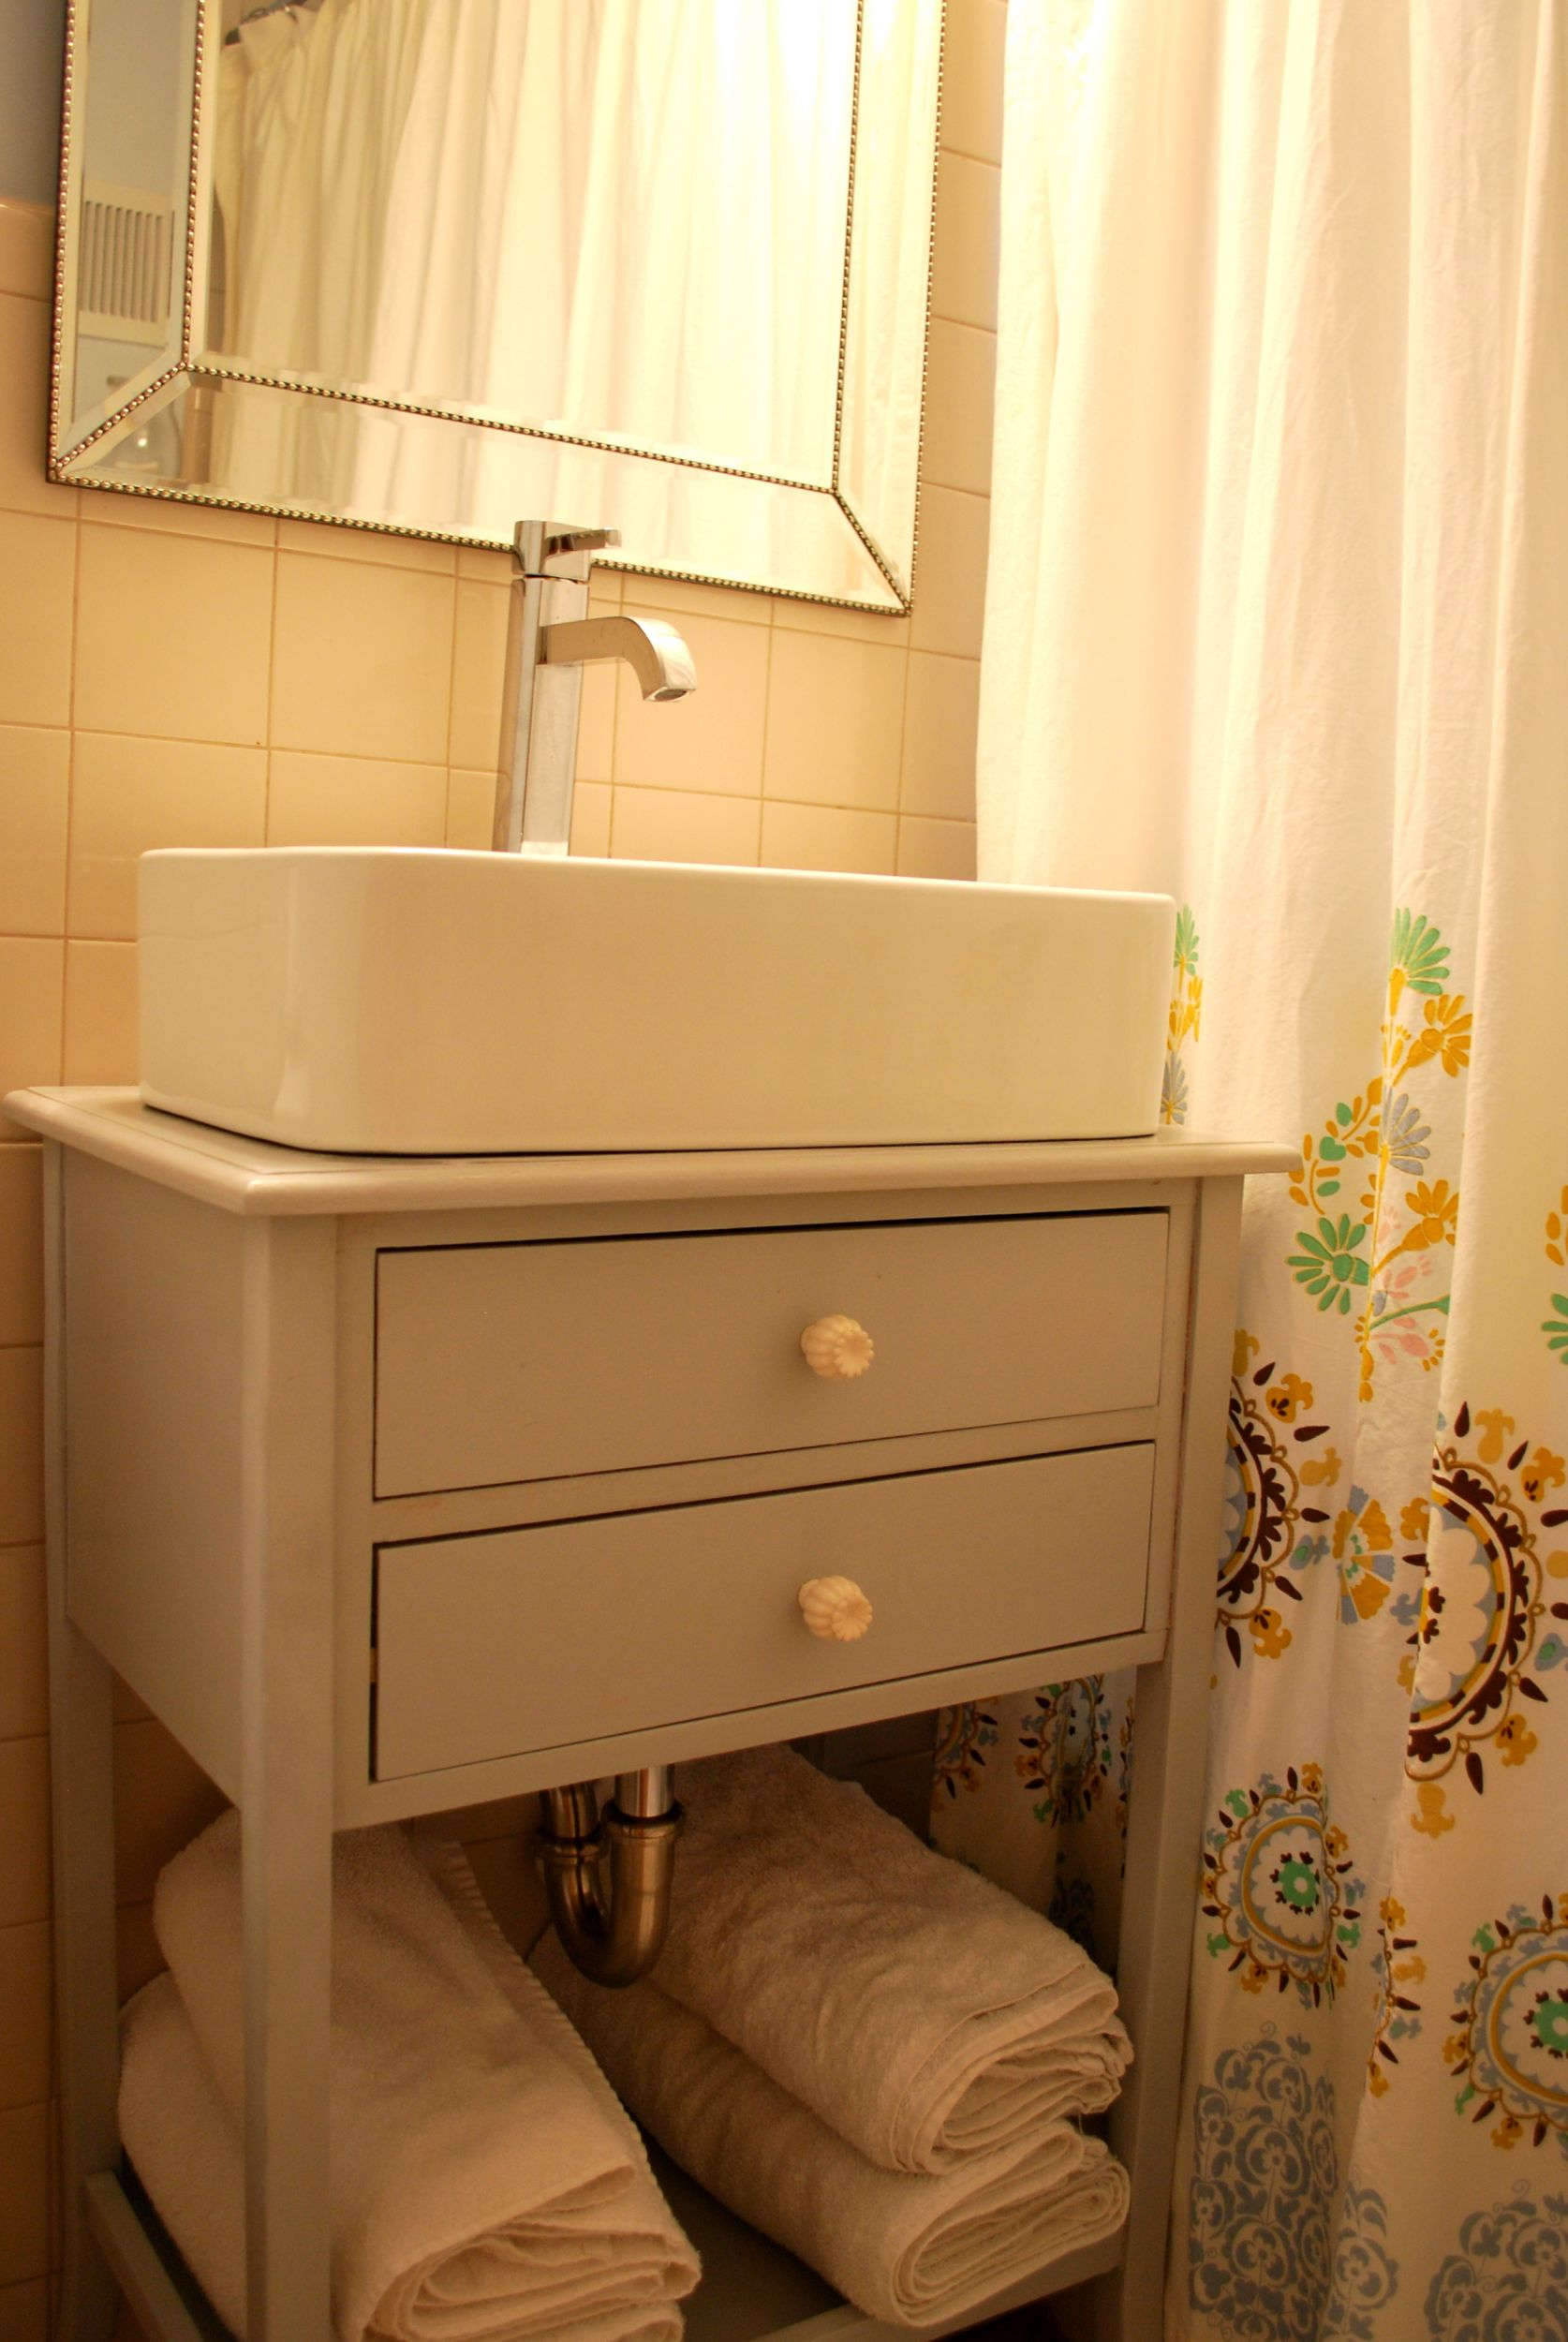 DIY Vessel Sink Cabinet The Suburban Urbanist The Inspired Room